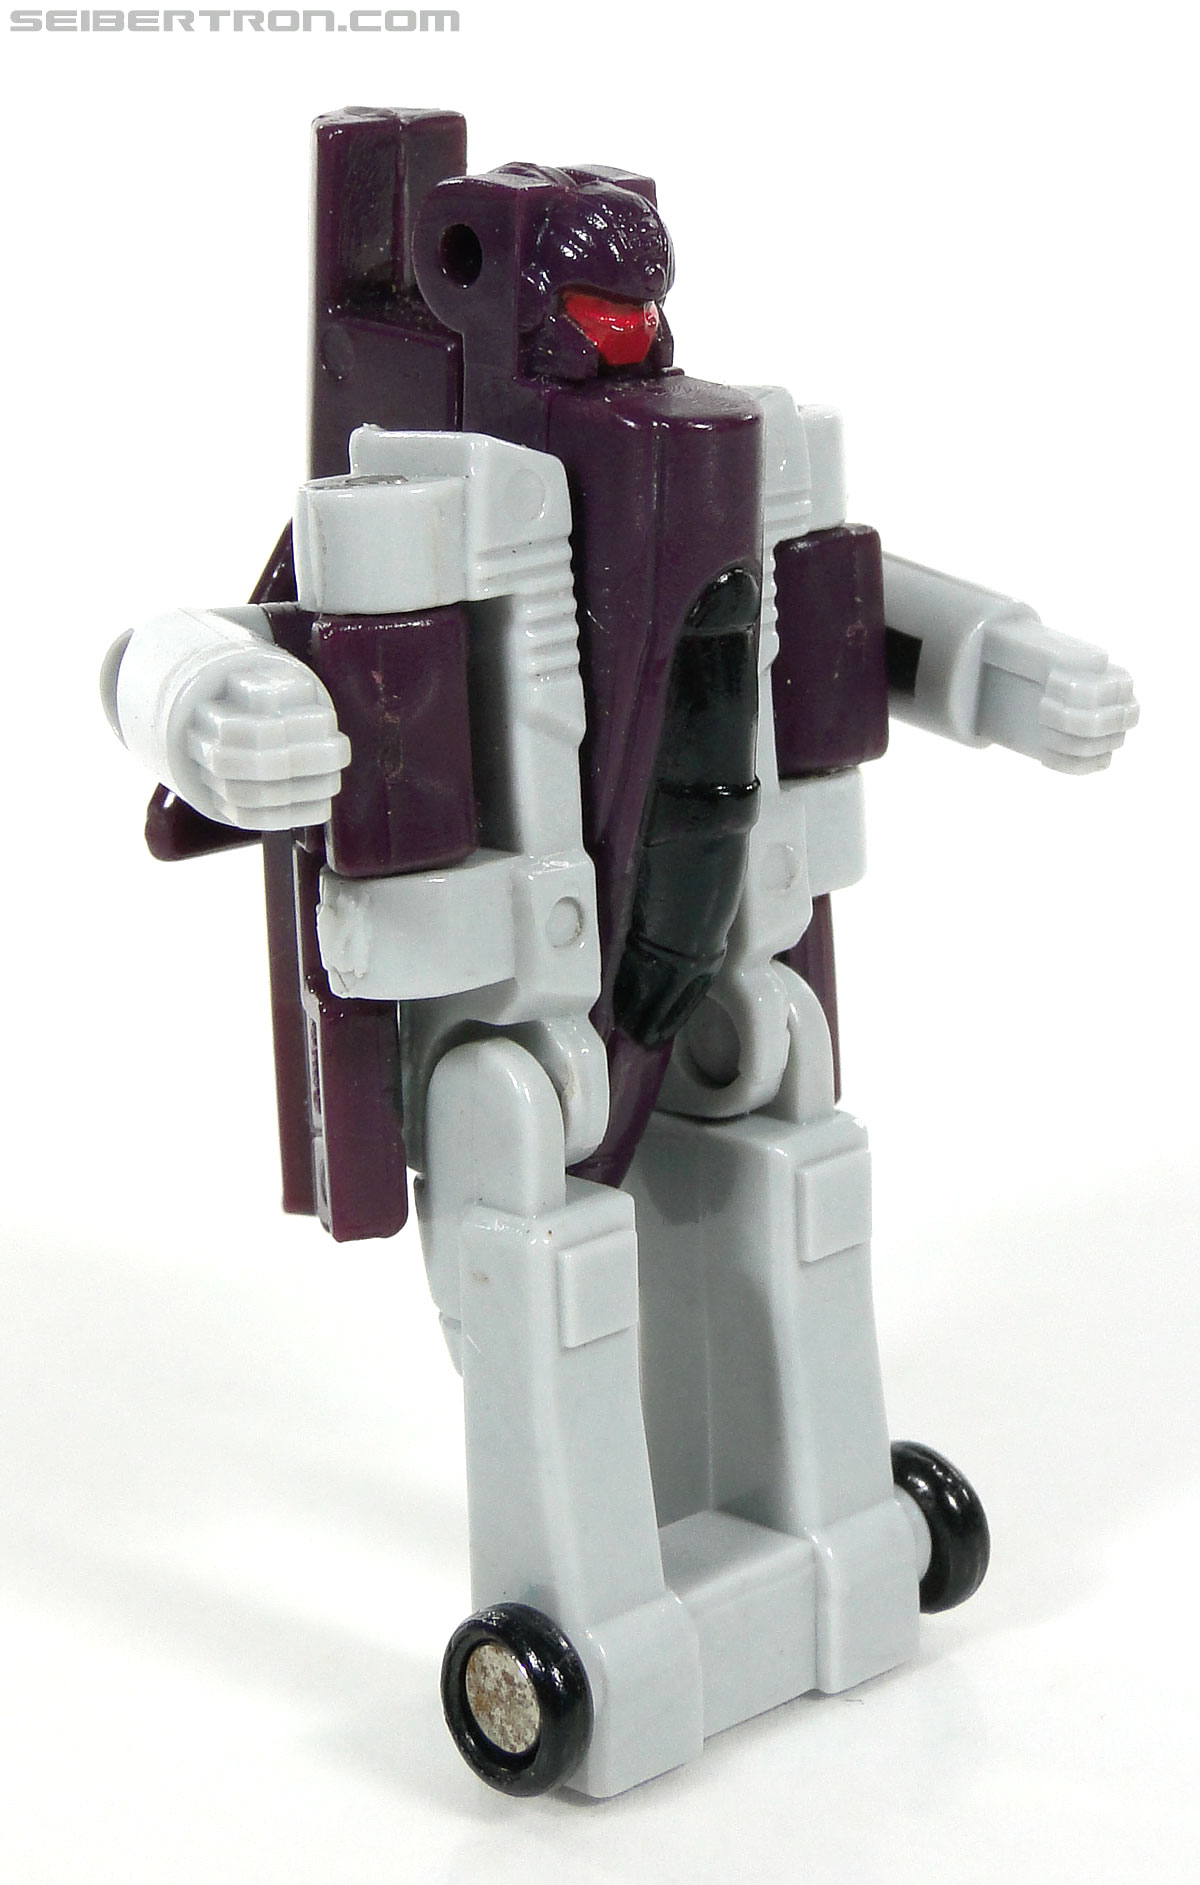 Transformers G1 1989 Flattop (Skywave) (Image #106 of 118)